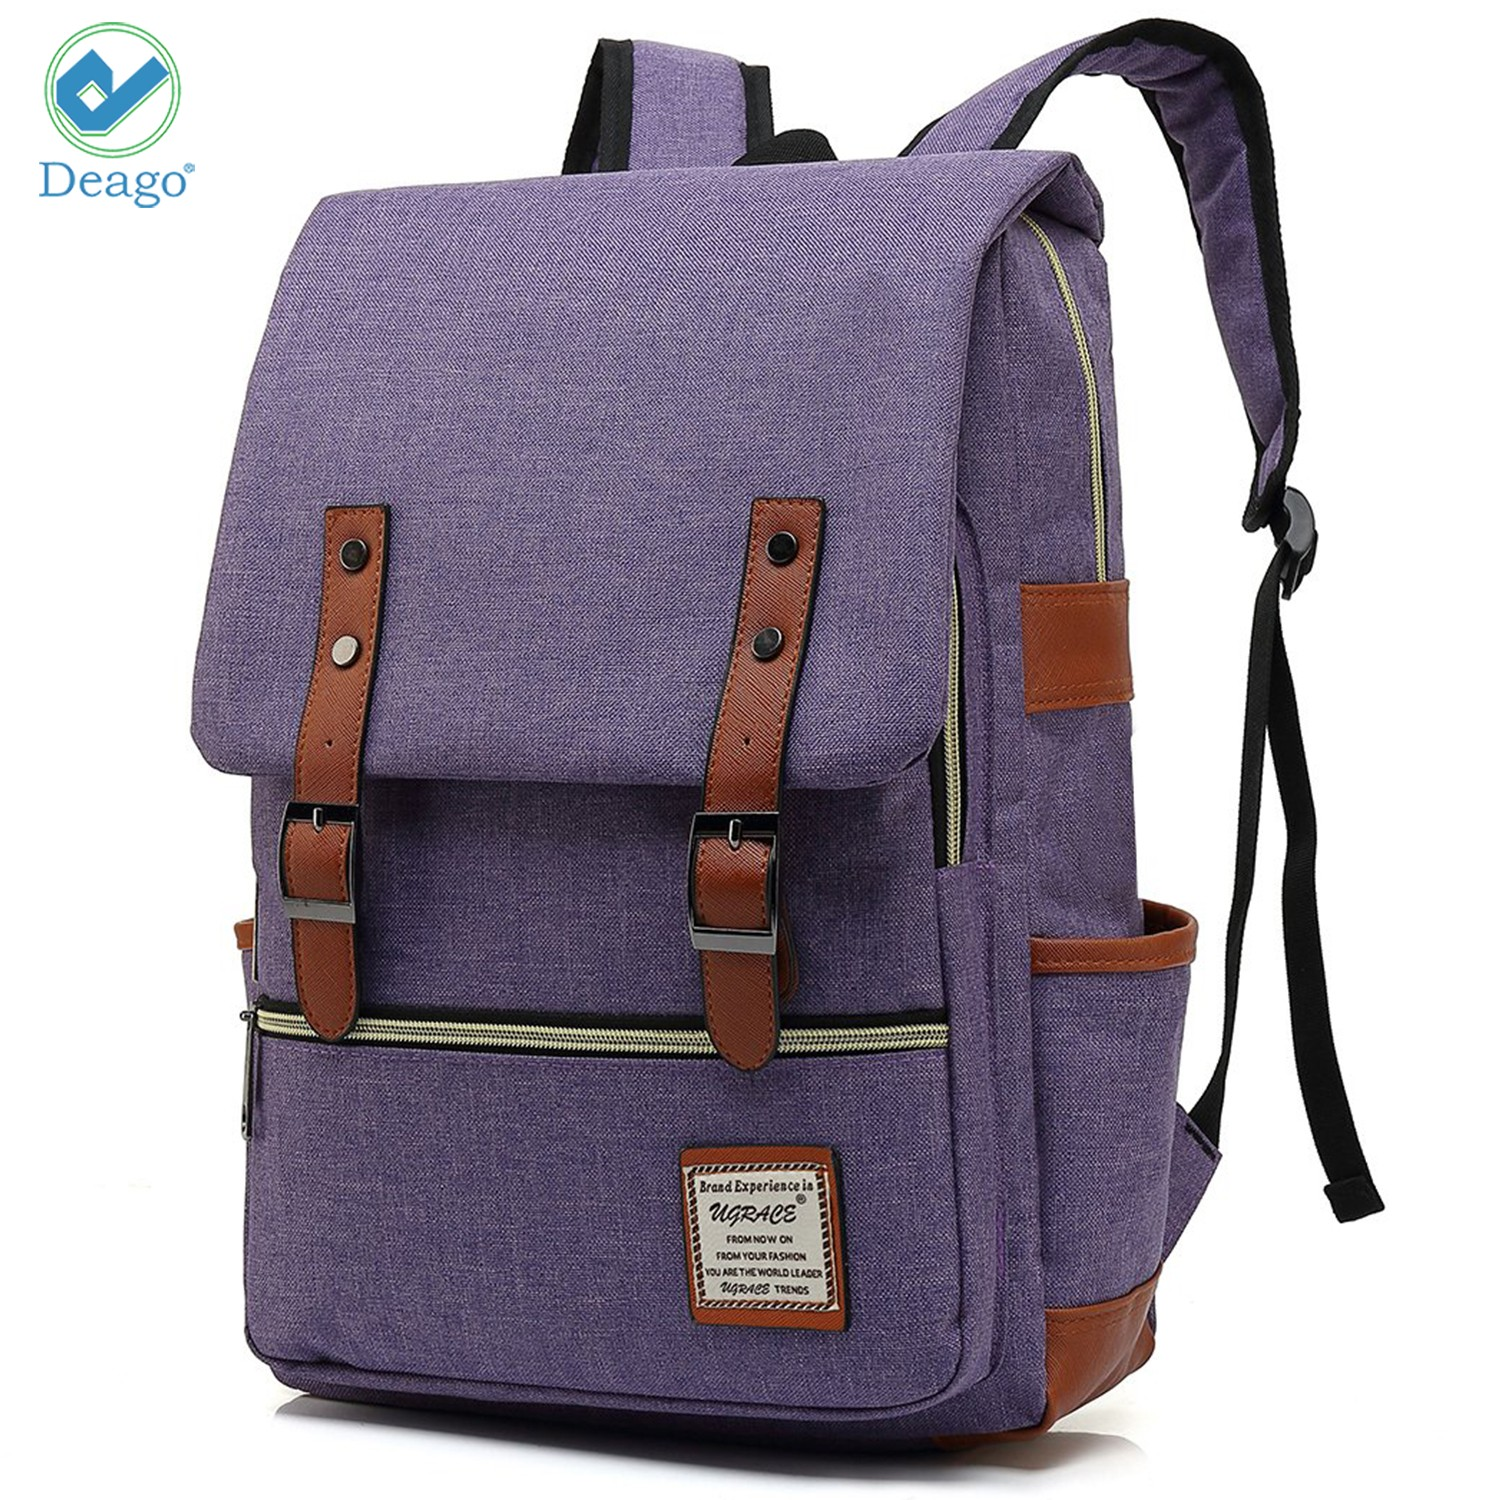 ZZKKO Music Note Butterfly Vintage Retro Backpacks College Book Laptop Bag Camping Hiking Travel Daypack